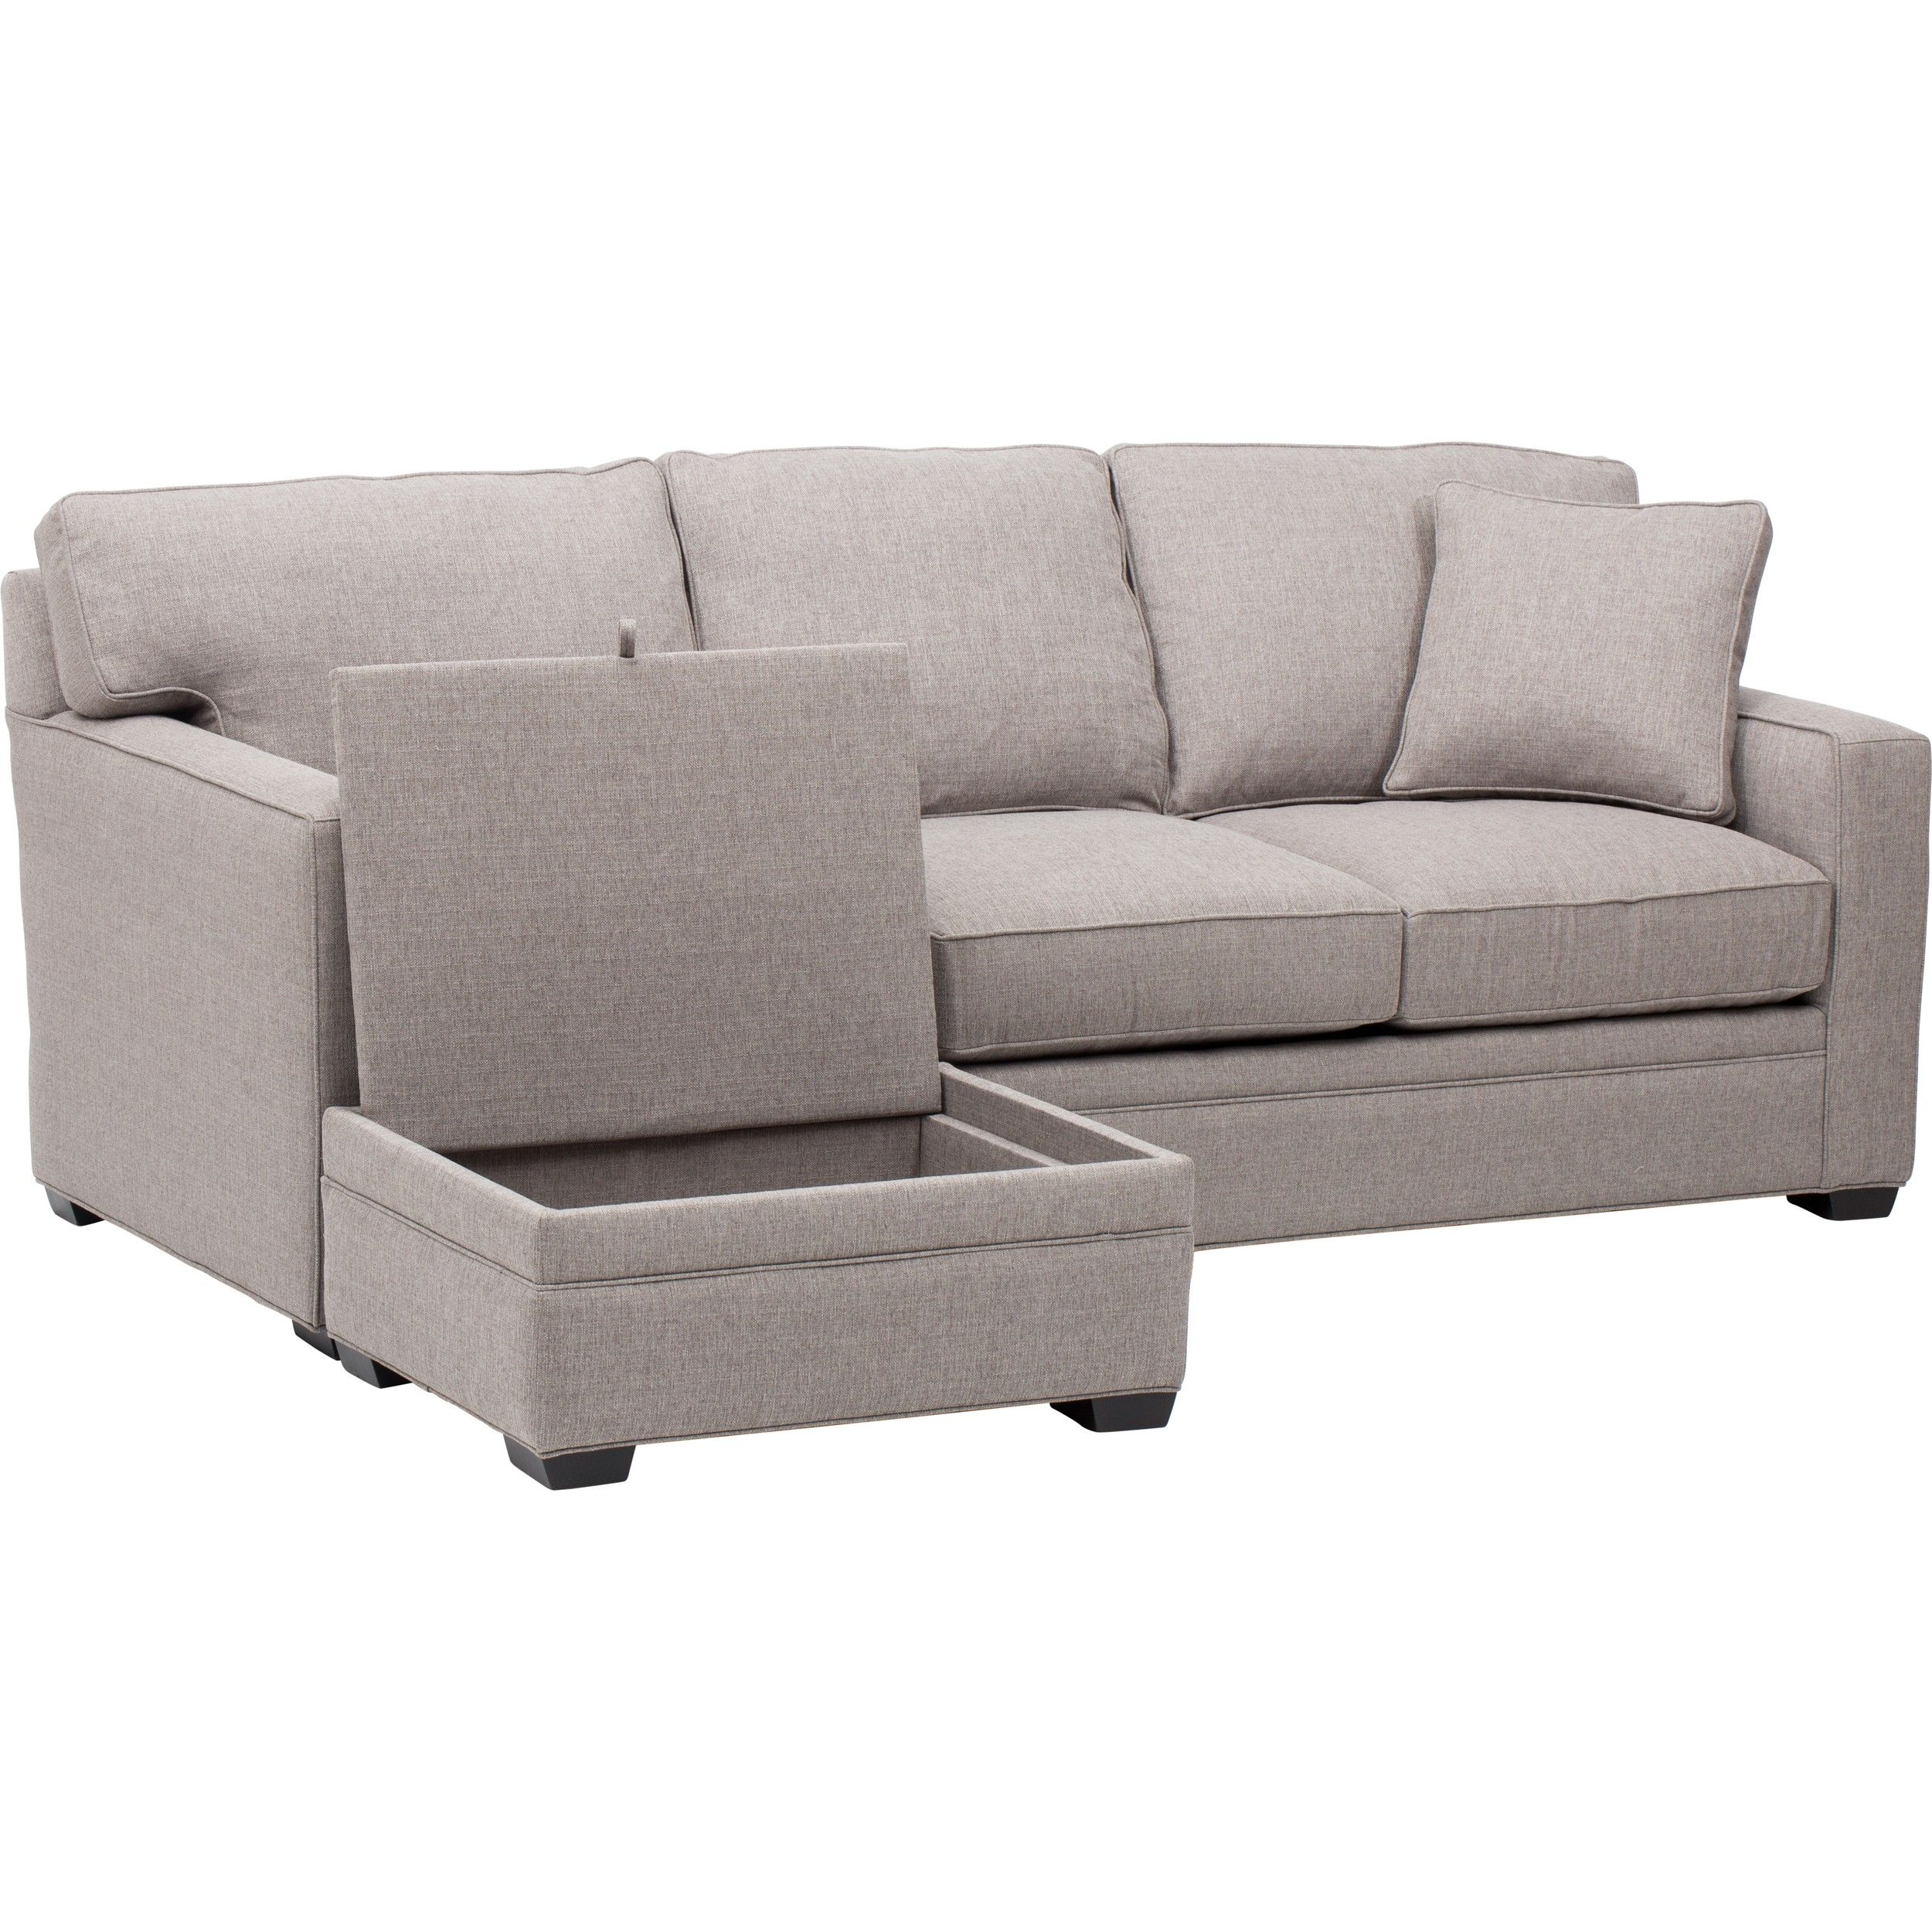 Parker Queen Sleeper Sectional Sleepers Sofas Furniture Sectional Sleeper Sofa Sofa Furniture Fabric Sofa